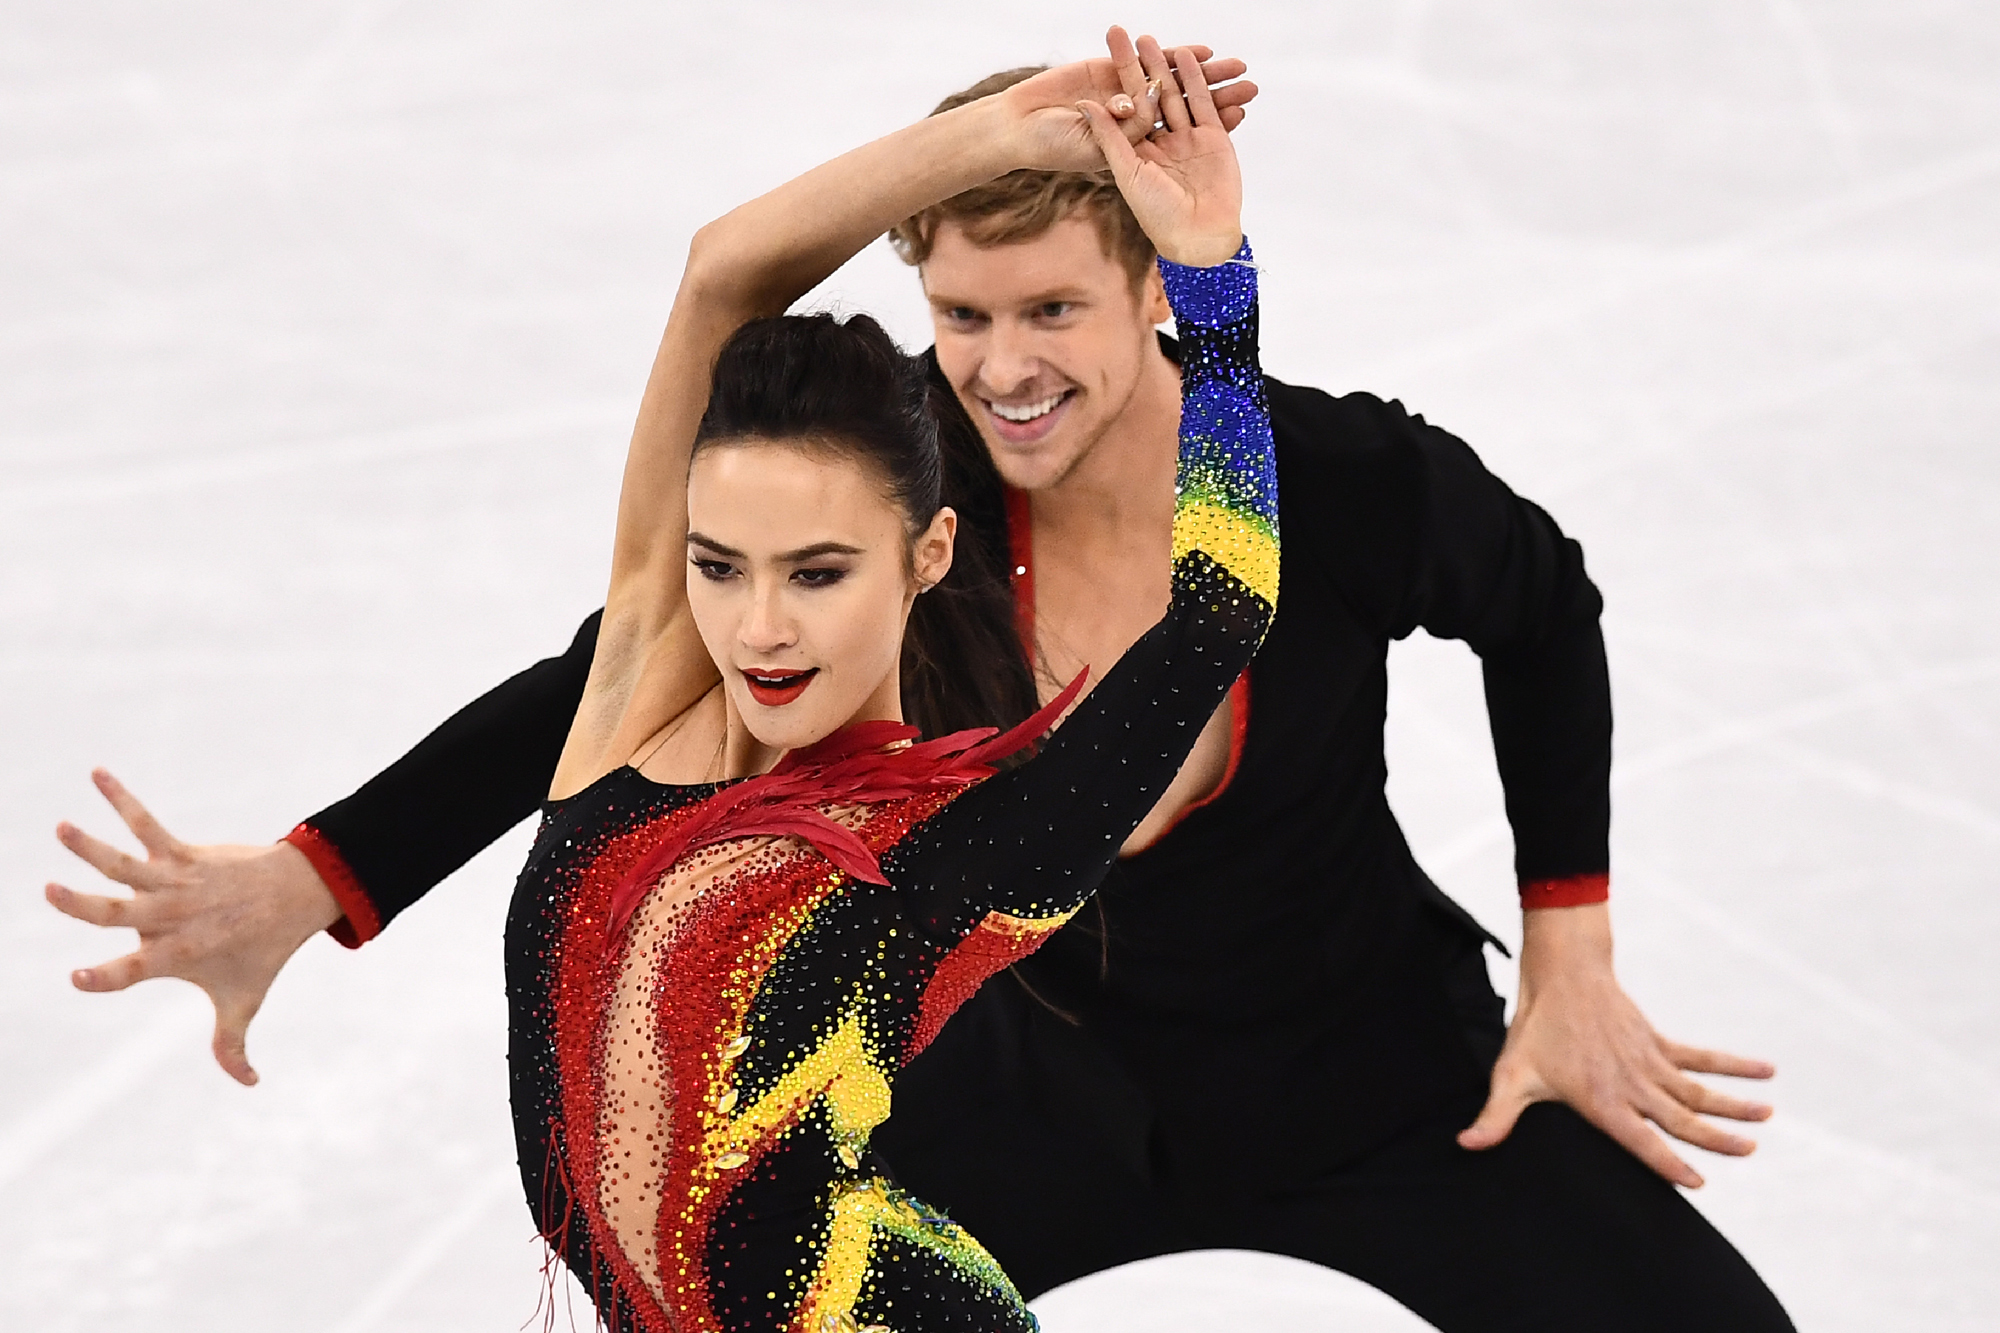 U.S. Skater Couple Competed Through a 'Kind of Traumatic' Moment Just Before Taking the Ice